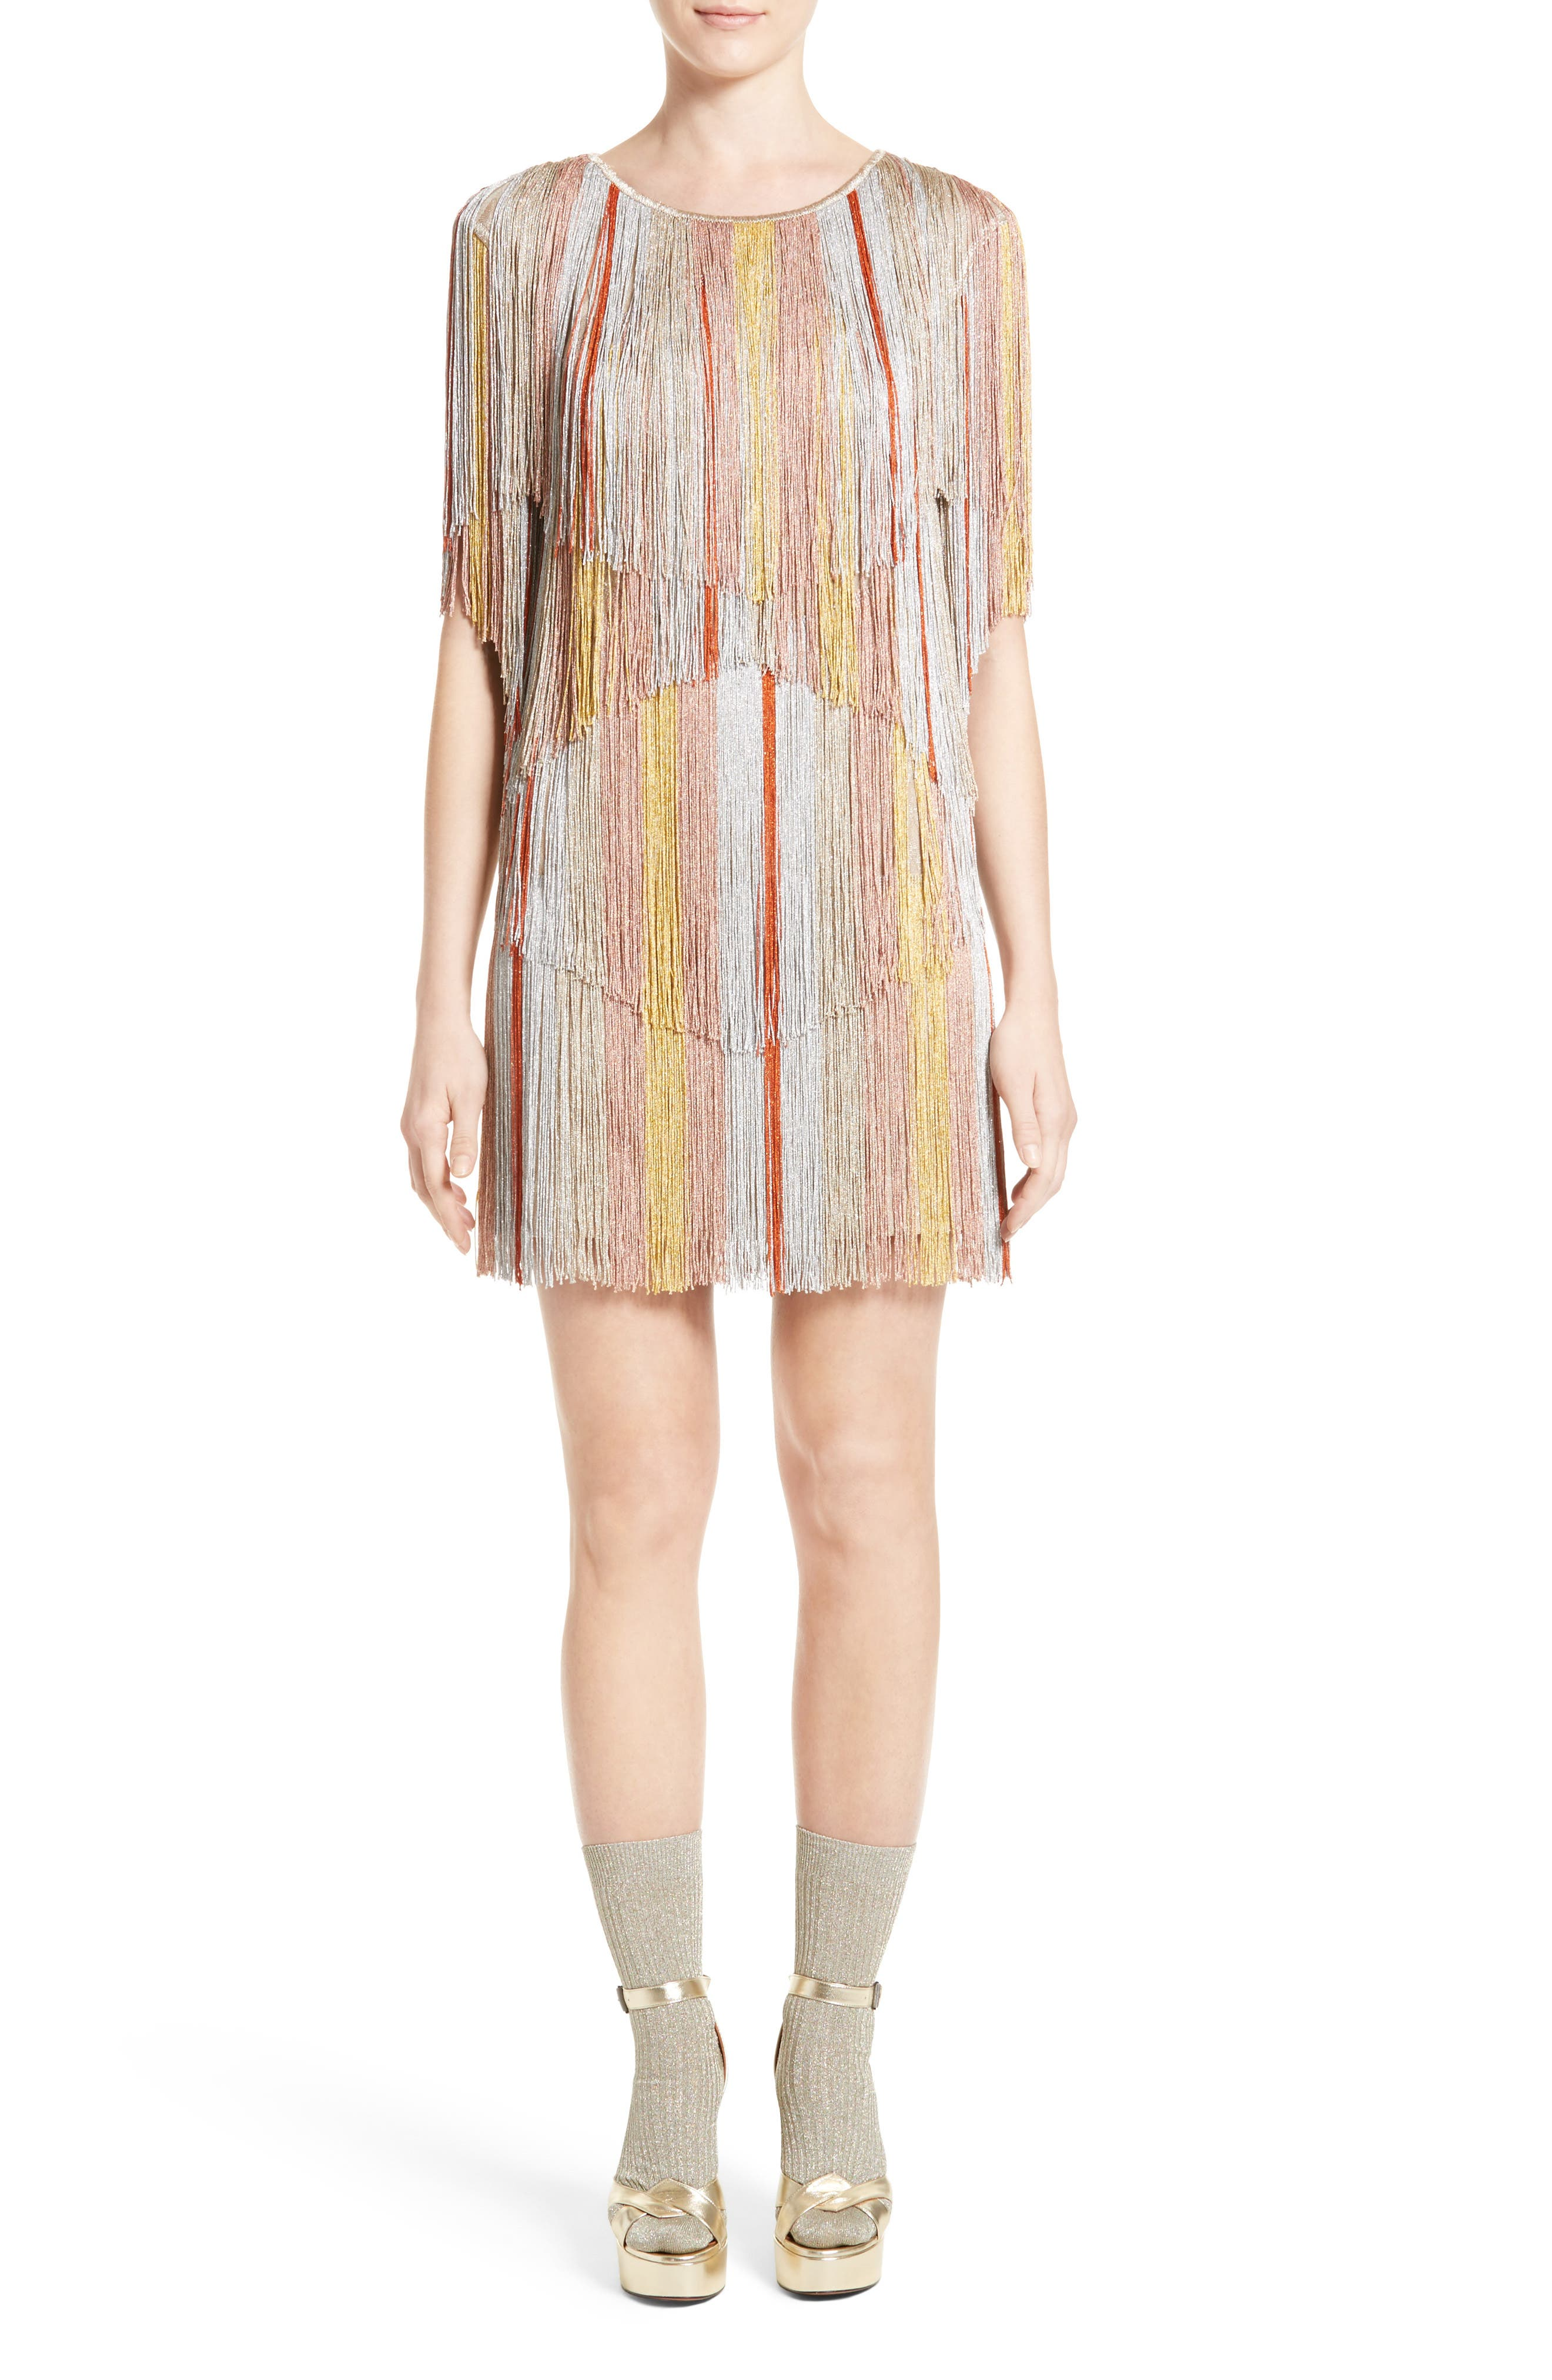 Missoni Metallic Fringe Minidress